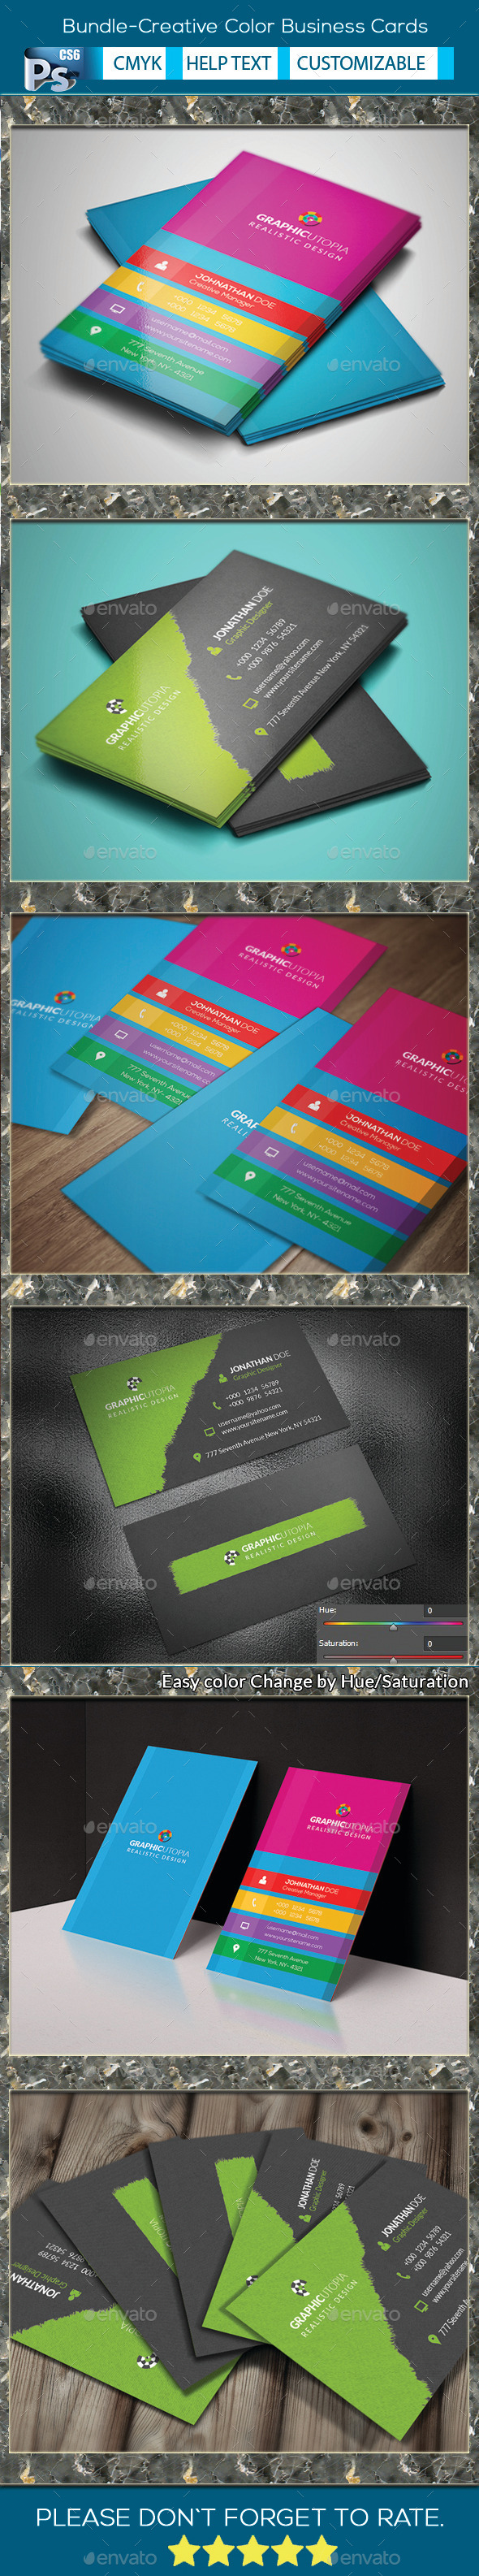 Bundle-Creative Color Business Cards